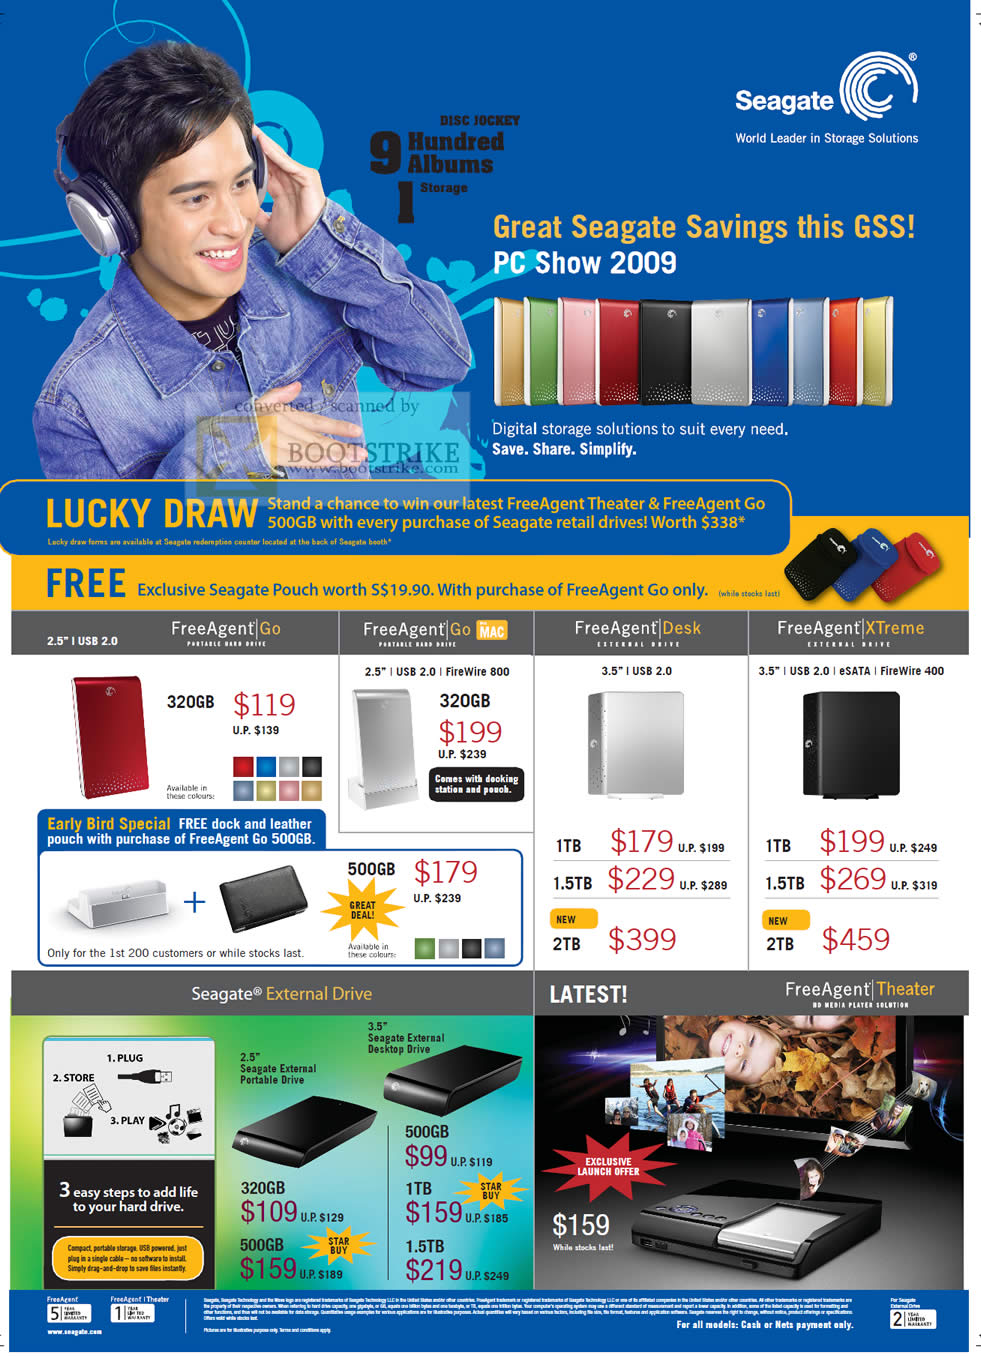 PC Show 2009 price list image brochure of Seagate FreeAgent Go Desk XTreme External Drive Theater